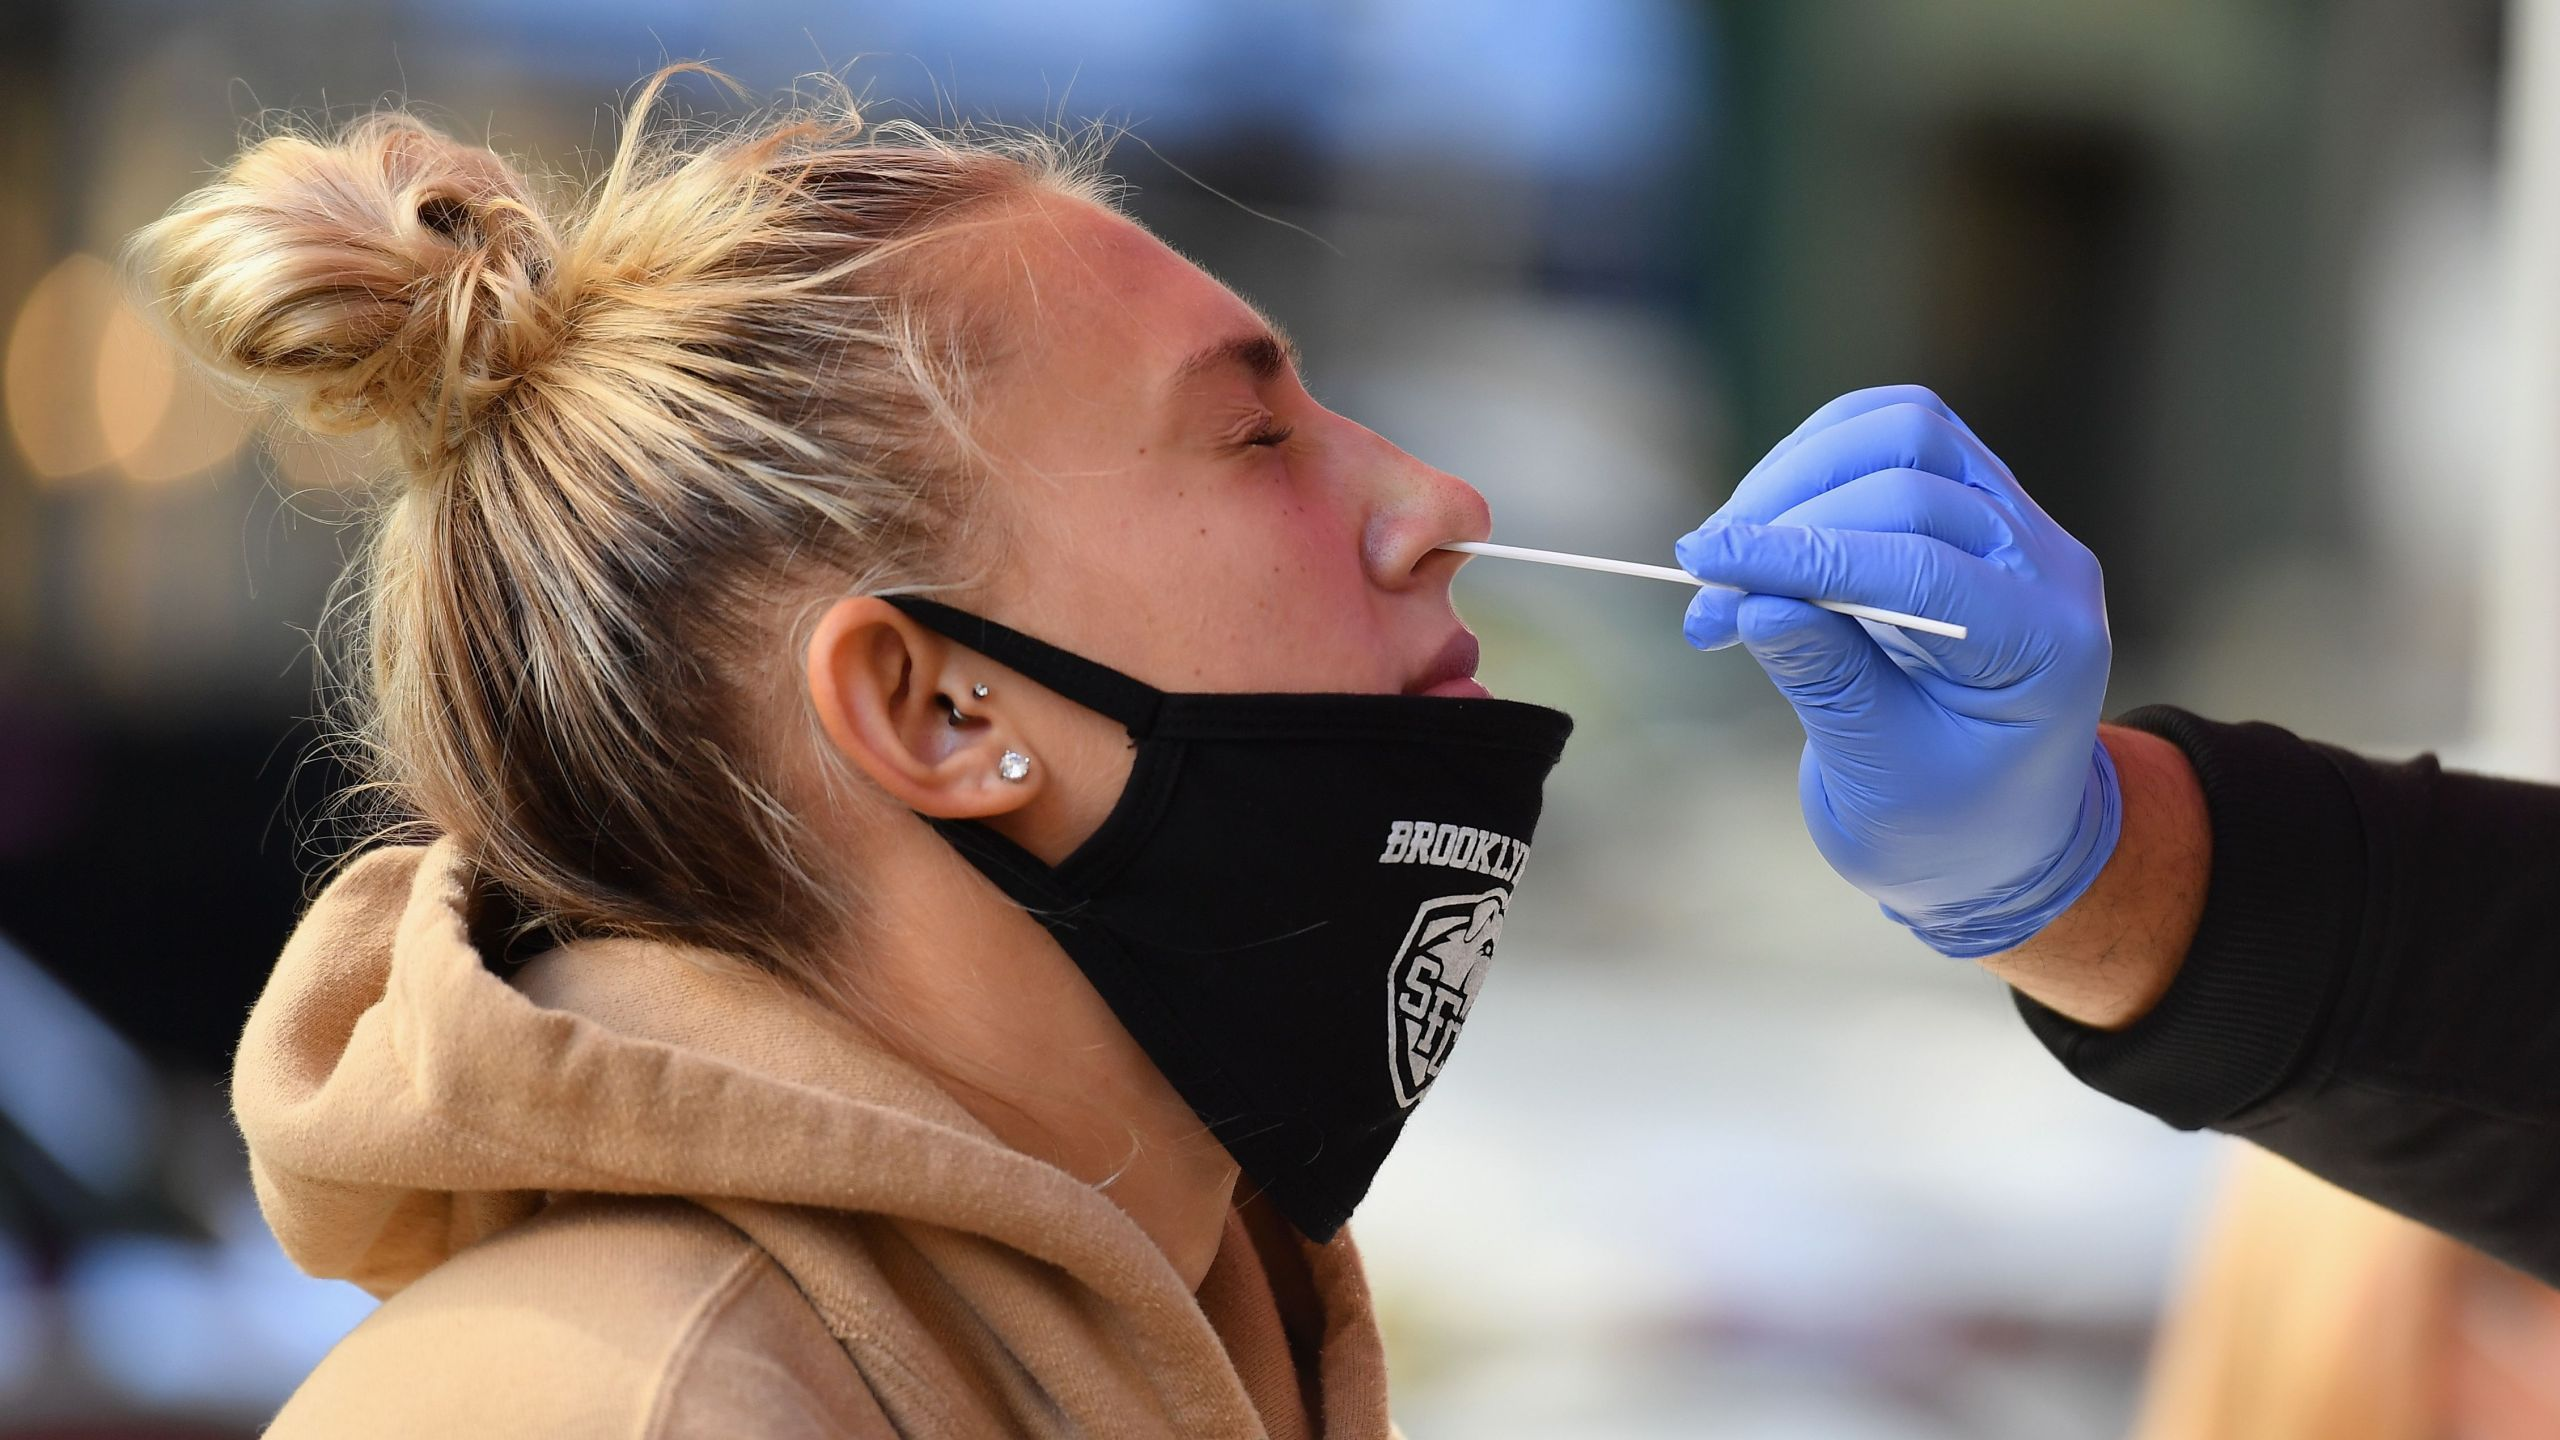 A medical worker takes a nasal swab sample from a student to test for COVID-19 at the Brooklyn Health Medical Alliance urgent care pop up testing site in New York City. New York's governor (Photo by ANGELA WEISS/AFP via Getty Images)